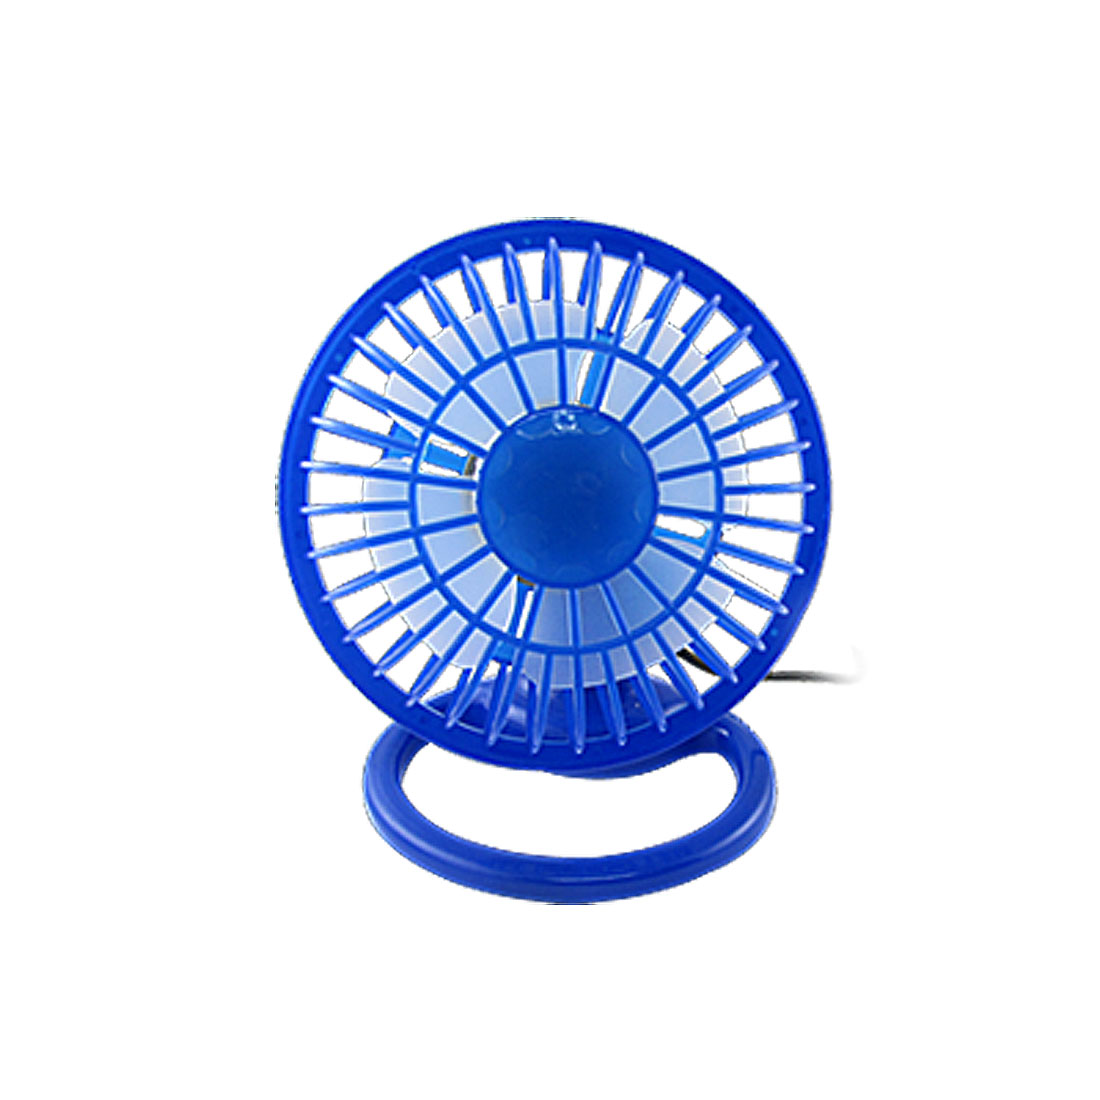 Angle Adjustable Blue 4 Blades Plastic ON/OFF Mini USB Desk Fan